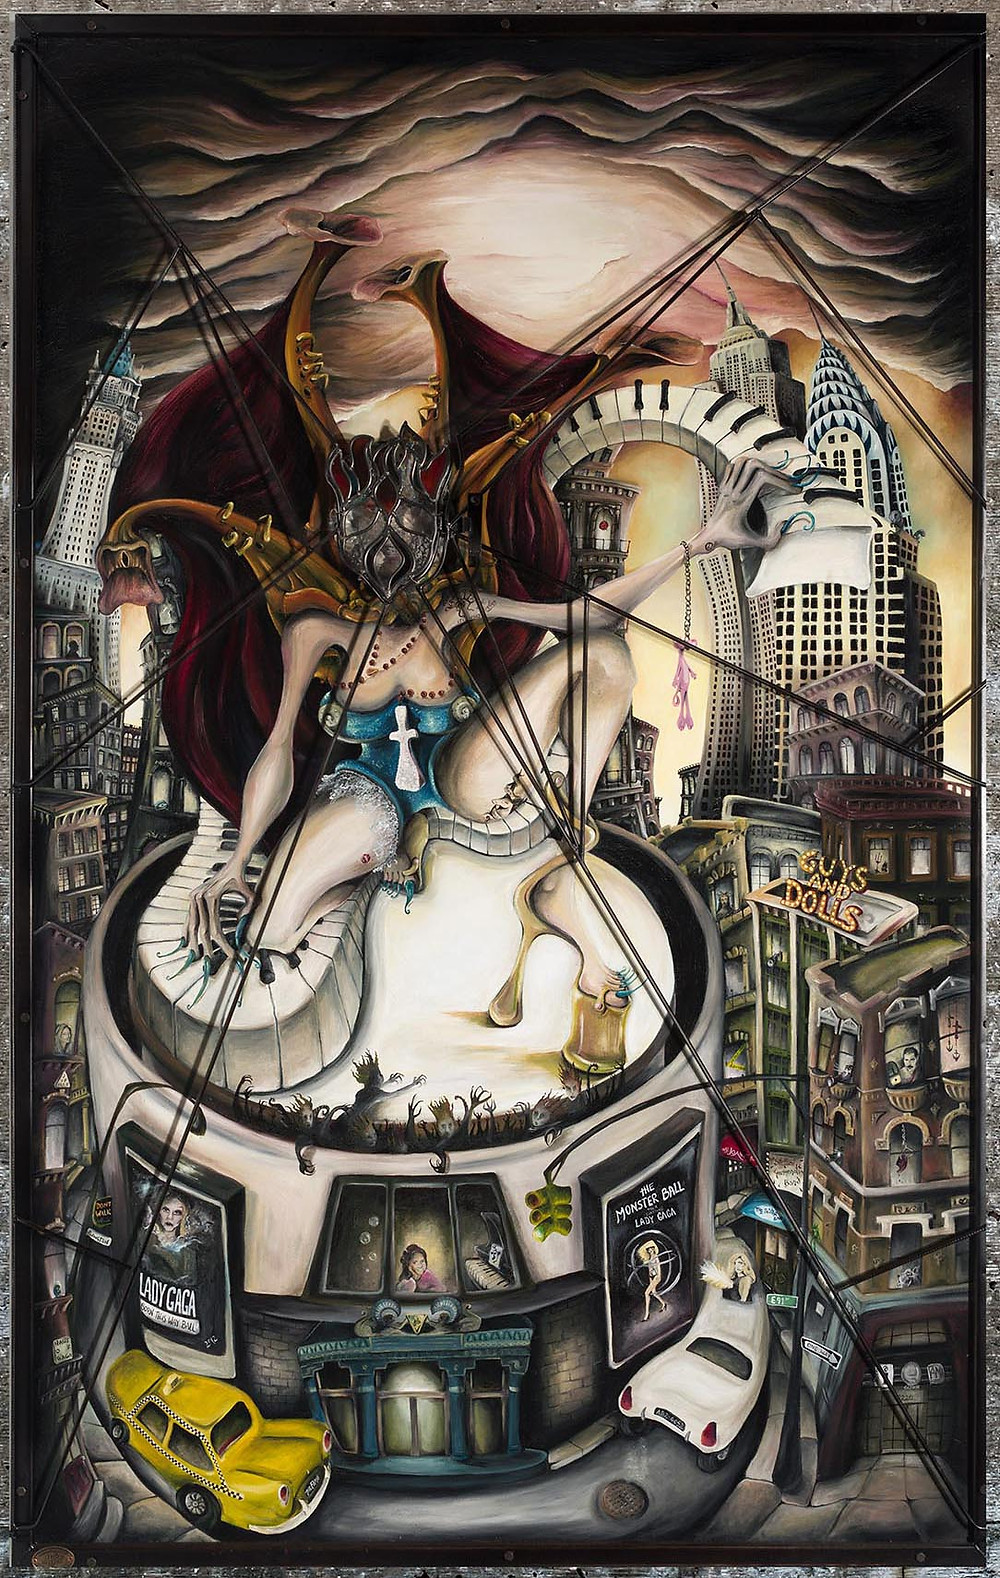 Welsh Artist Julia's Painting depicting the life and music of Lady Gaga, she stands on Madison Square Gardens playing her piano. Mother Monster to her fans, New York is the backdrop to the painting with little references to her music and life throughout.